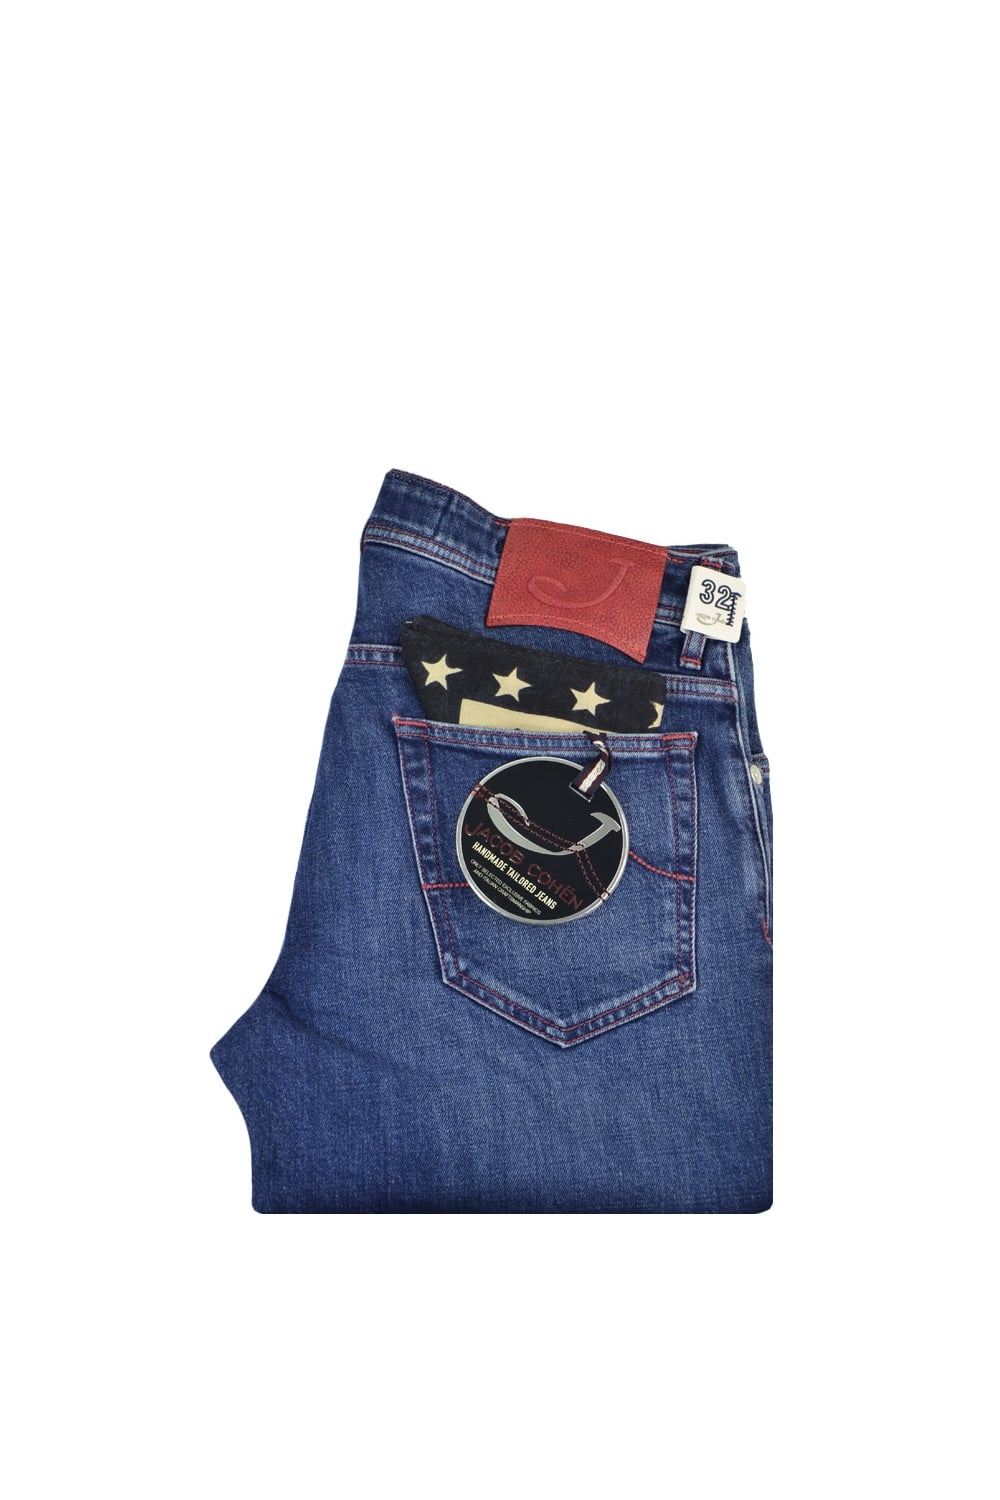 f415824169fc0a Jacob Cohen Slim Fit J622 Tailored Jeans Denim/Red - Clothing from ...